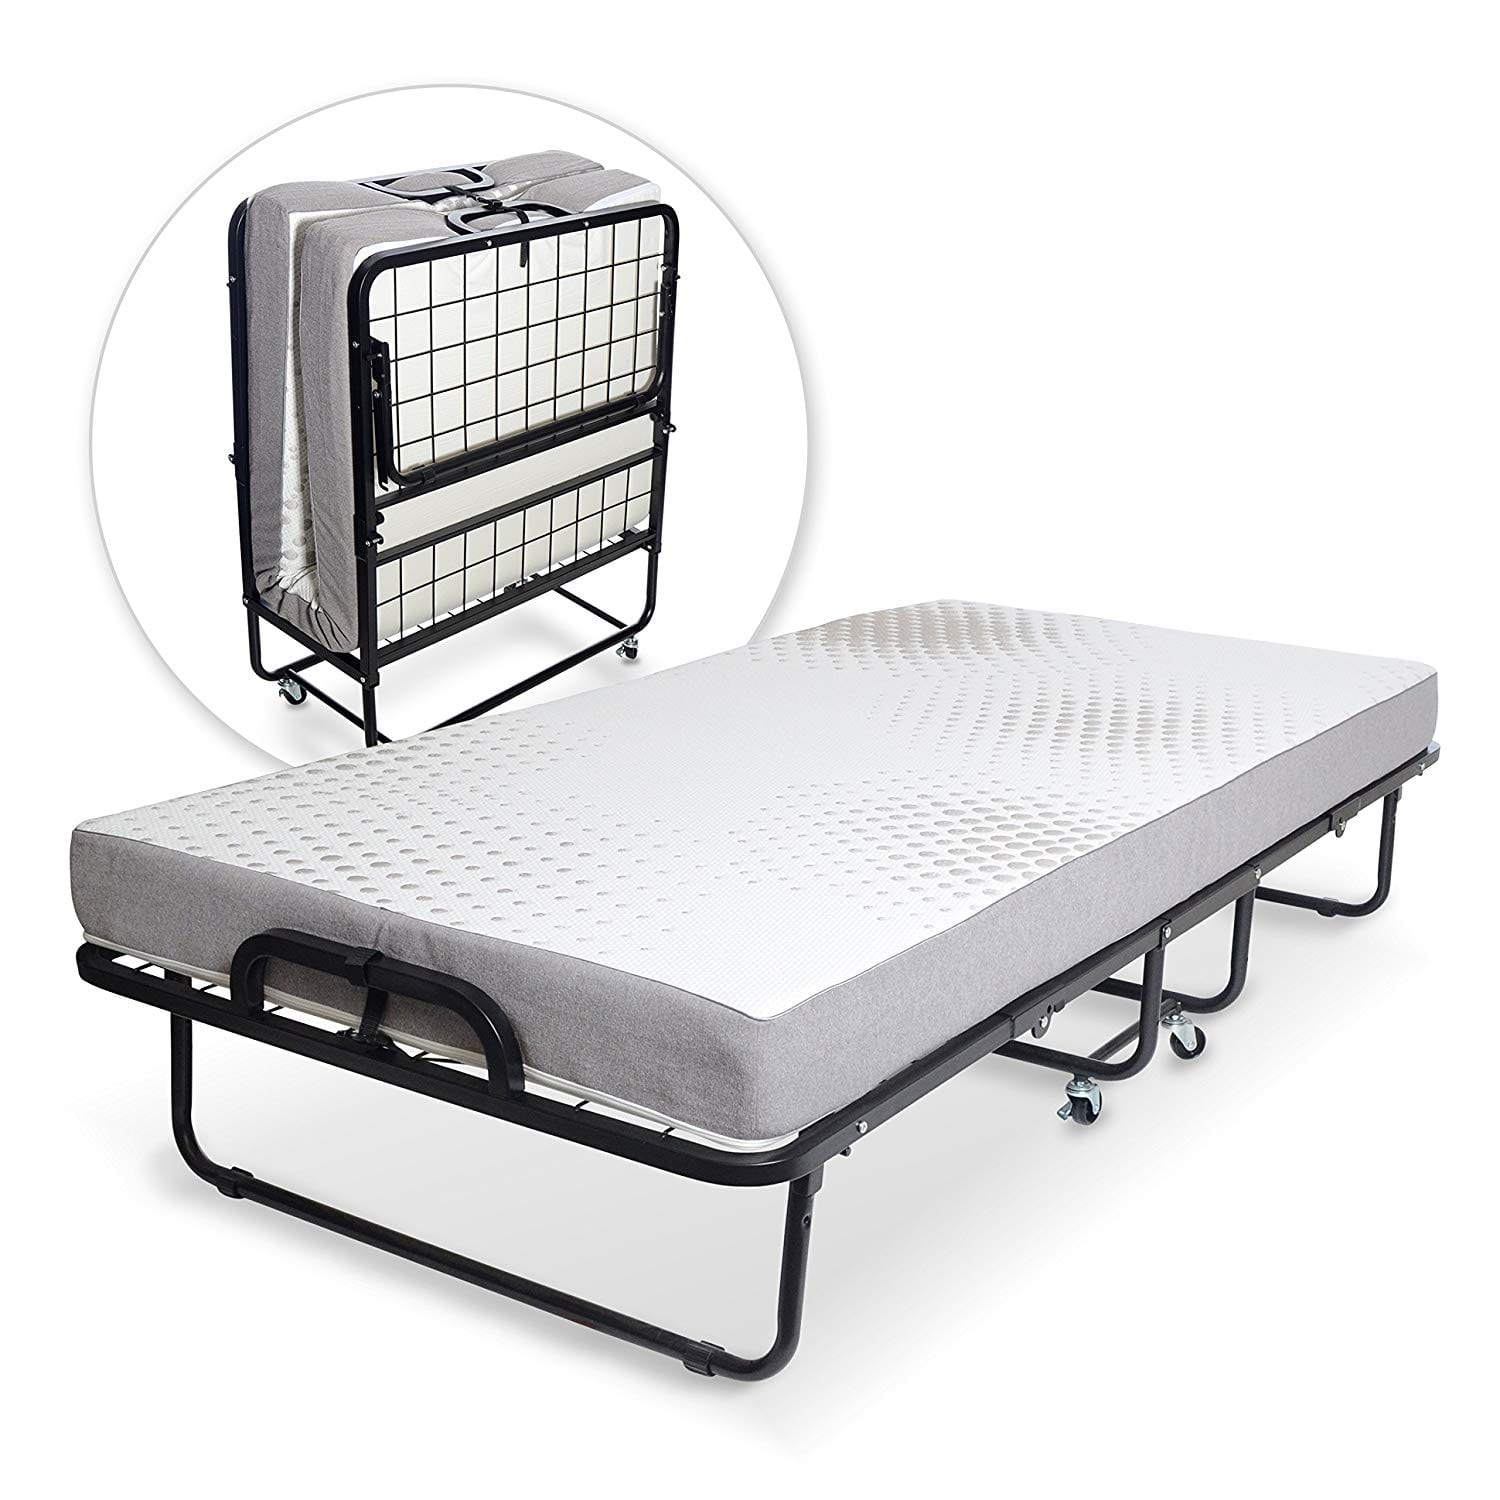 Z Beds For Adults The Best Folding Beds Buying Guide For 2019 Snoremagazine